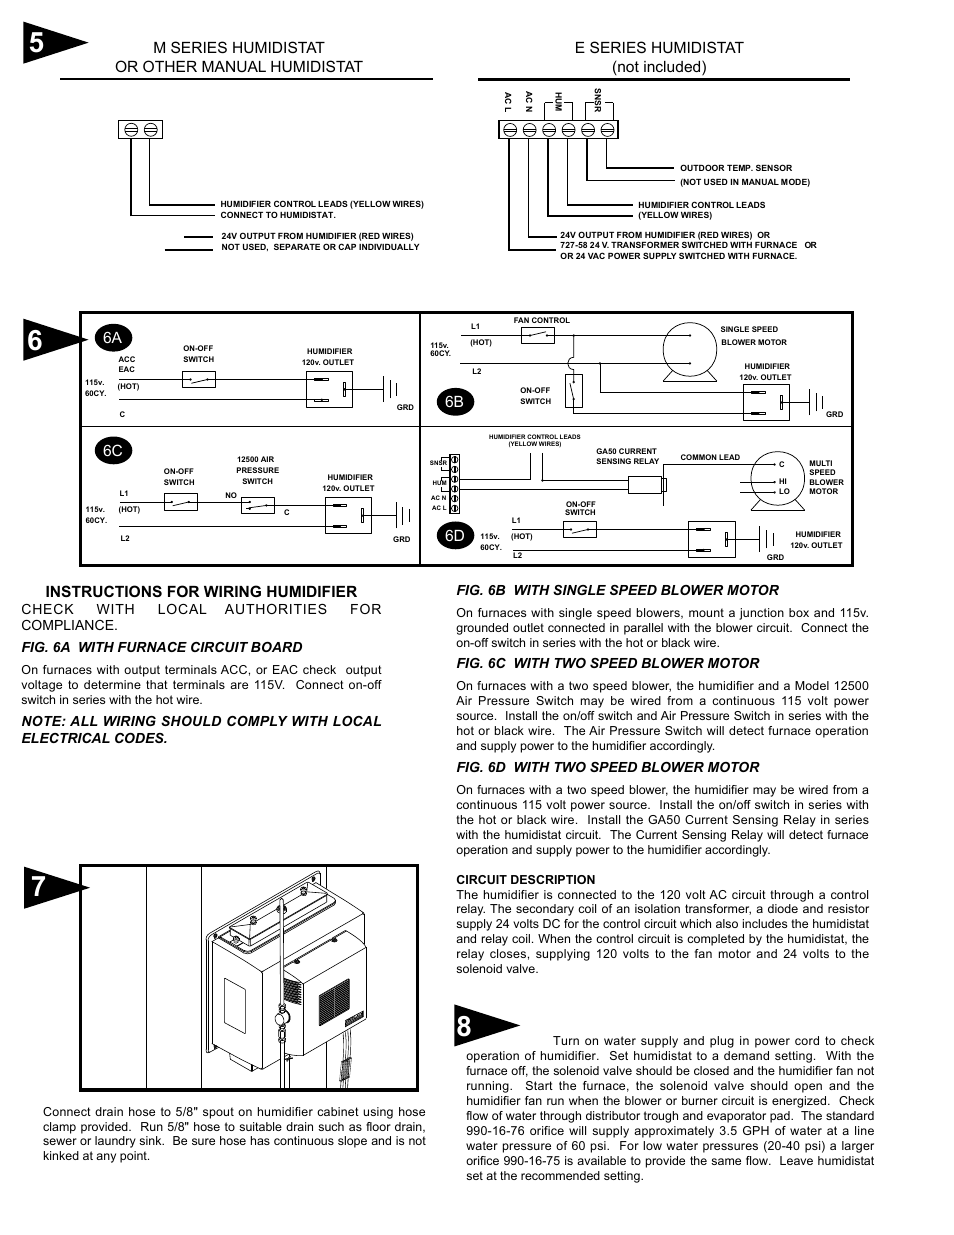 hight resolution of instructions for wiring humidifier e series humidistat not included 6a 6c 6b generalaire 1137 series legacy user manual page 3 4